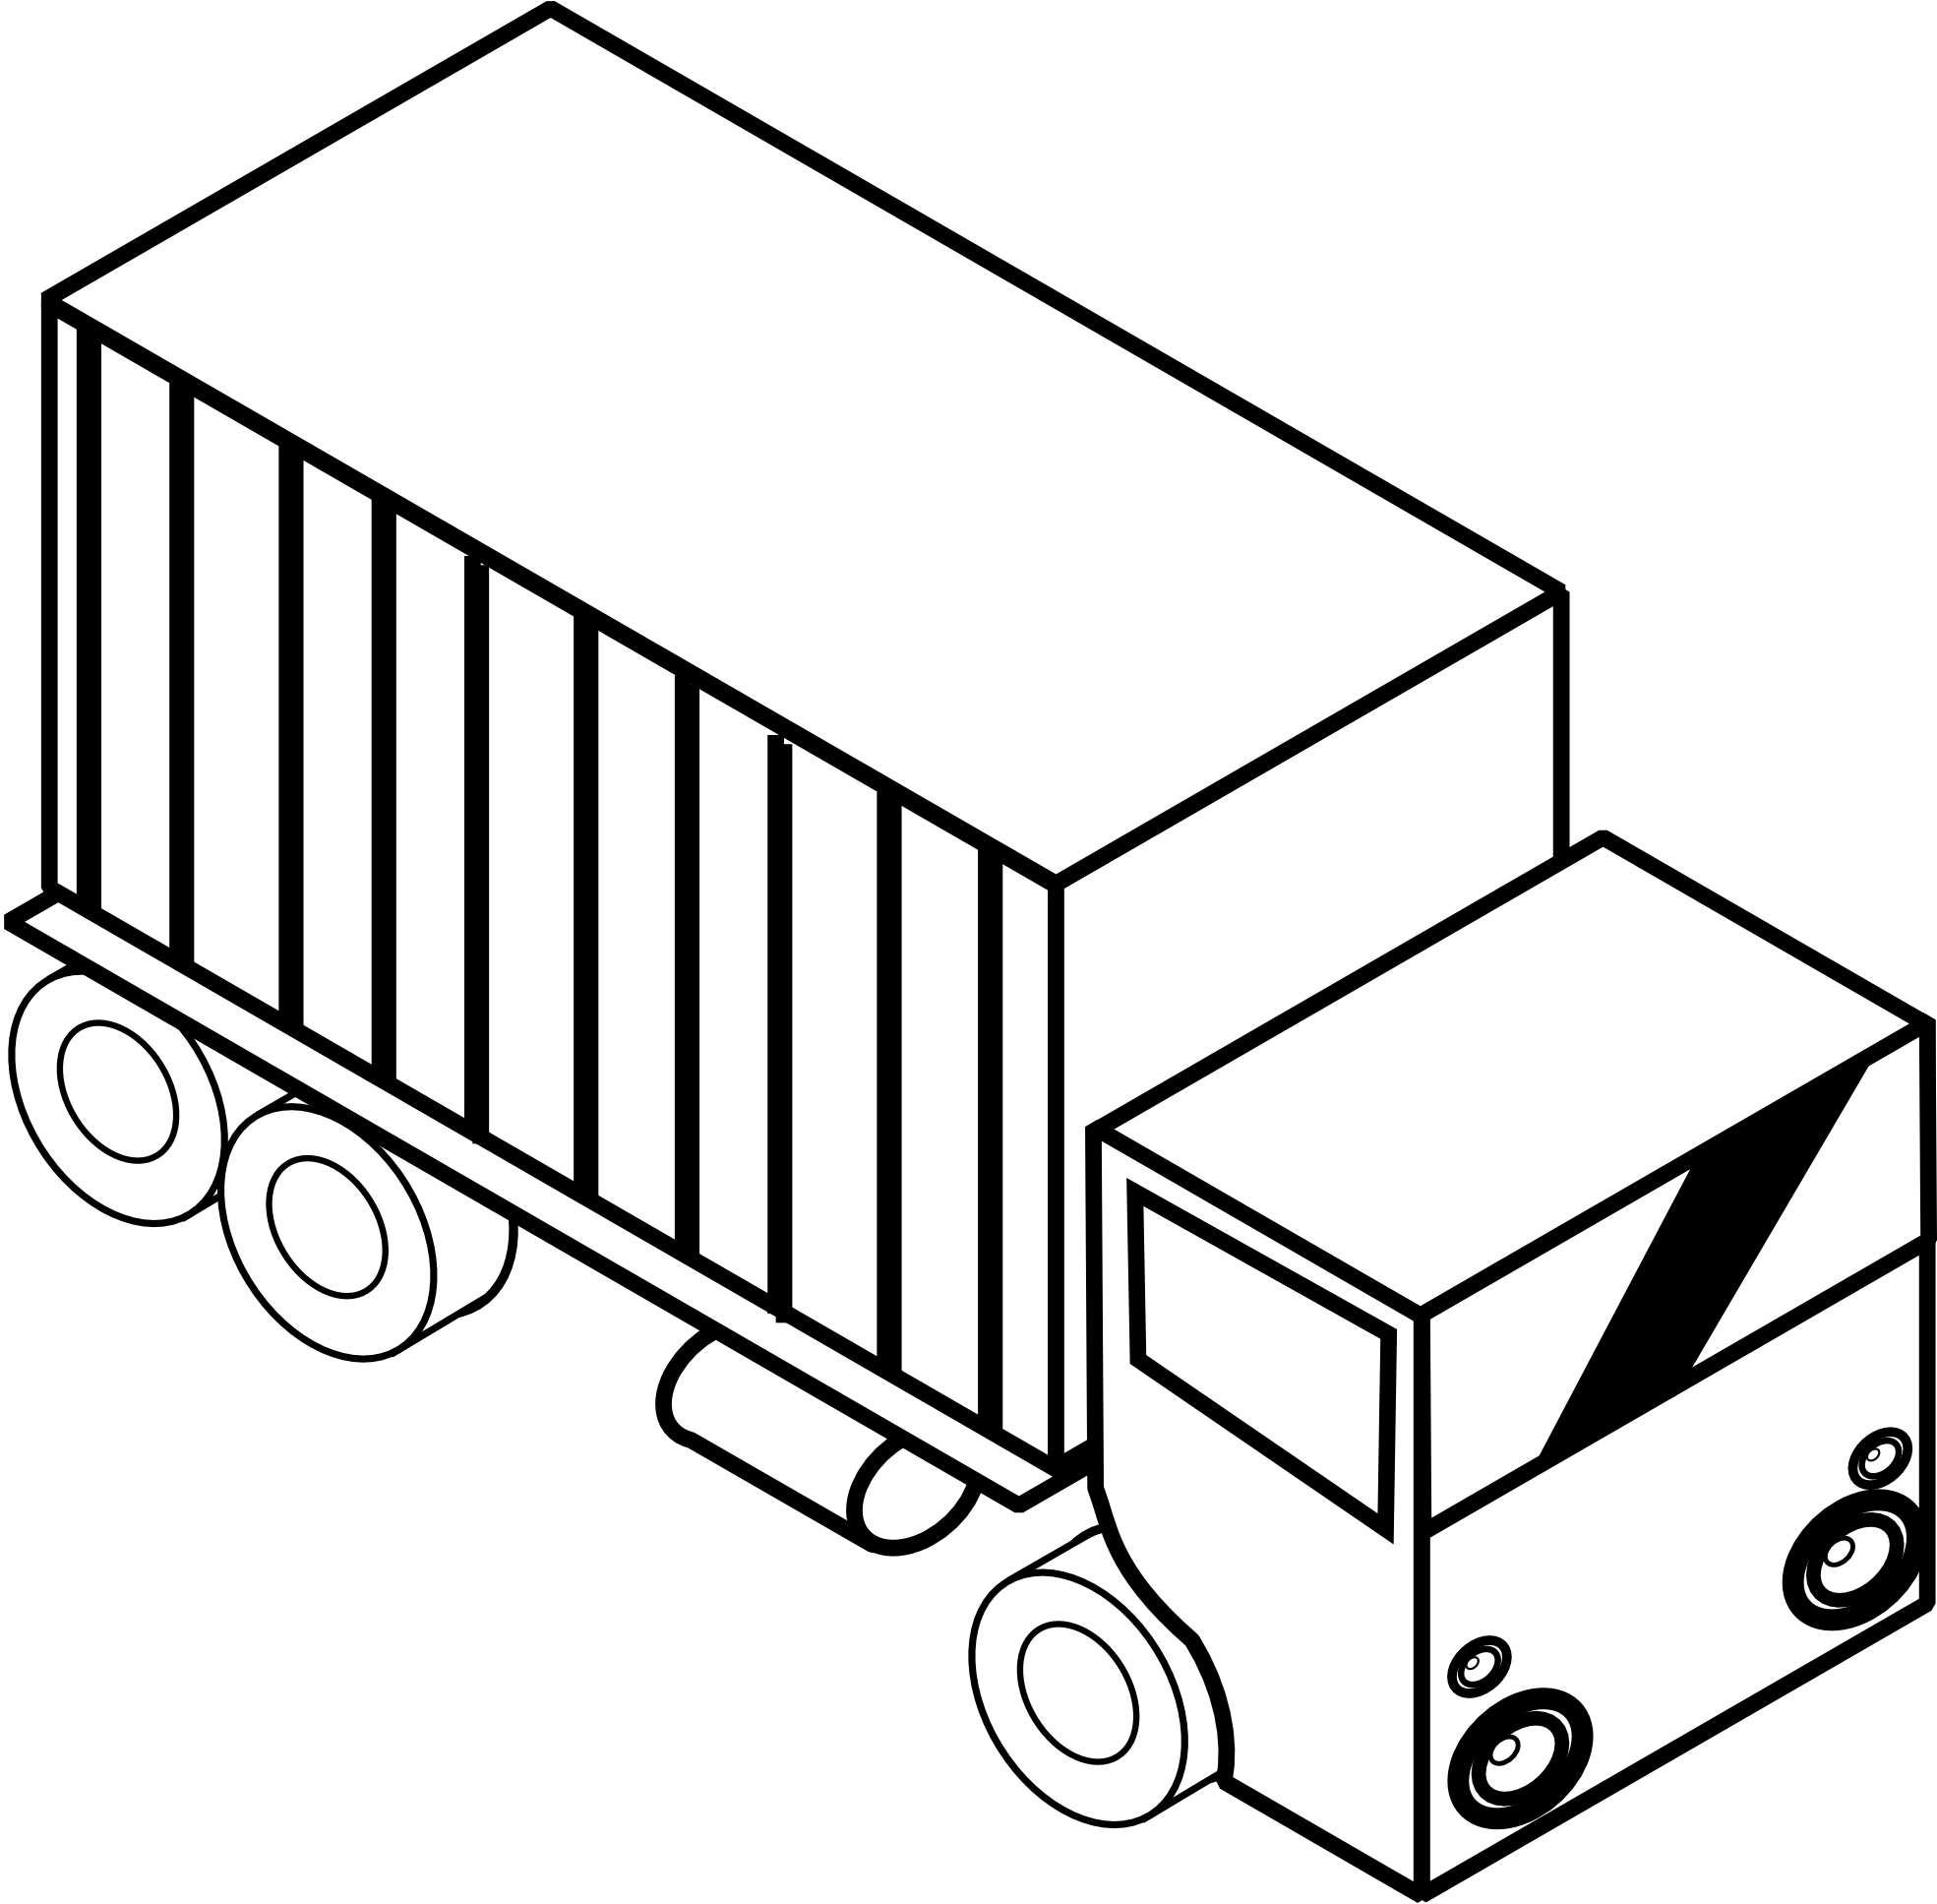 Train car clipart black and white image Truck Clipart Black And White | Clipart Panda - Free Clipart Images image